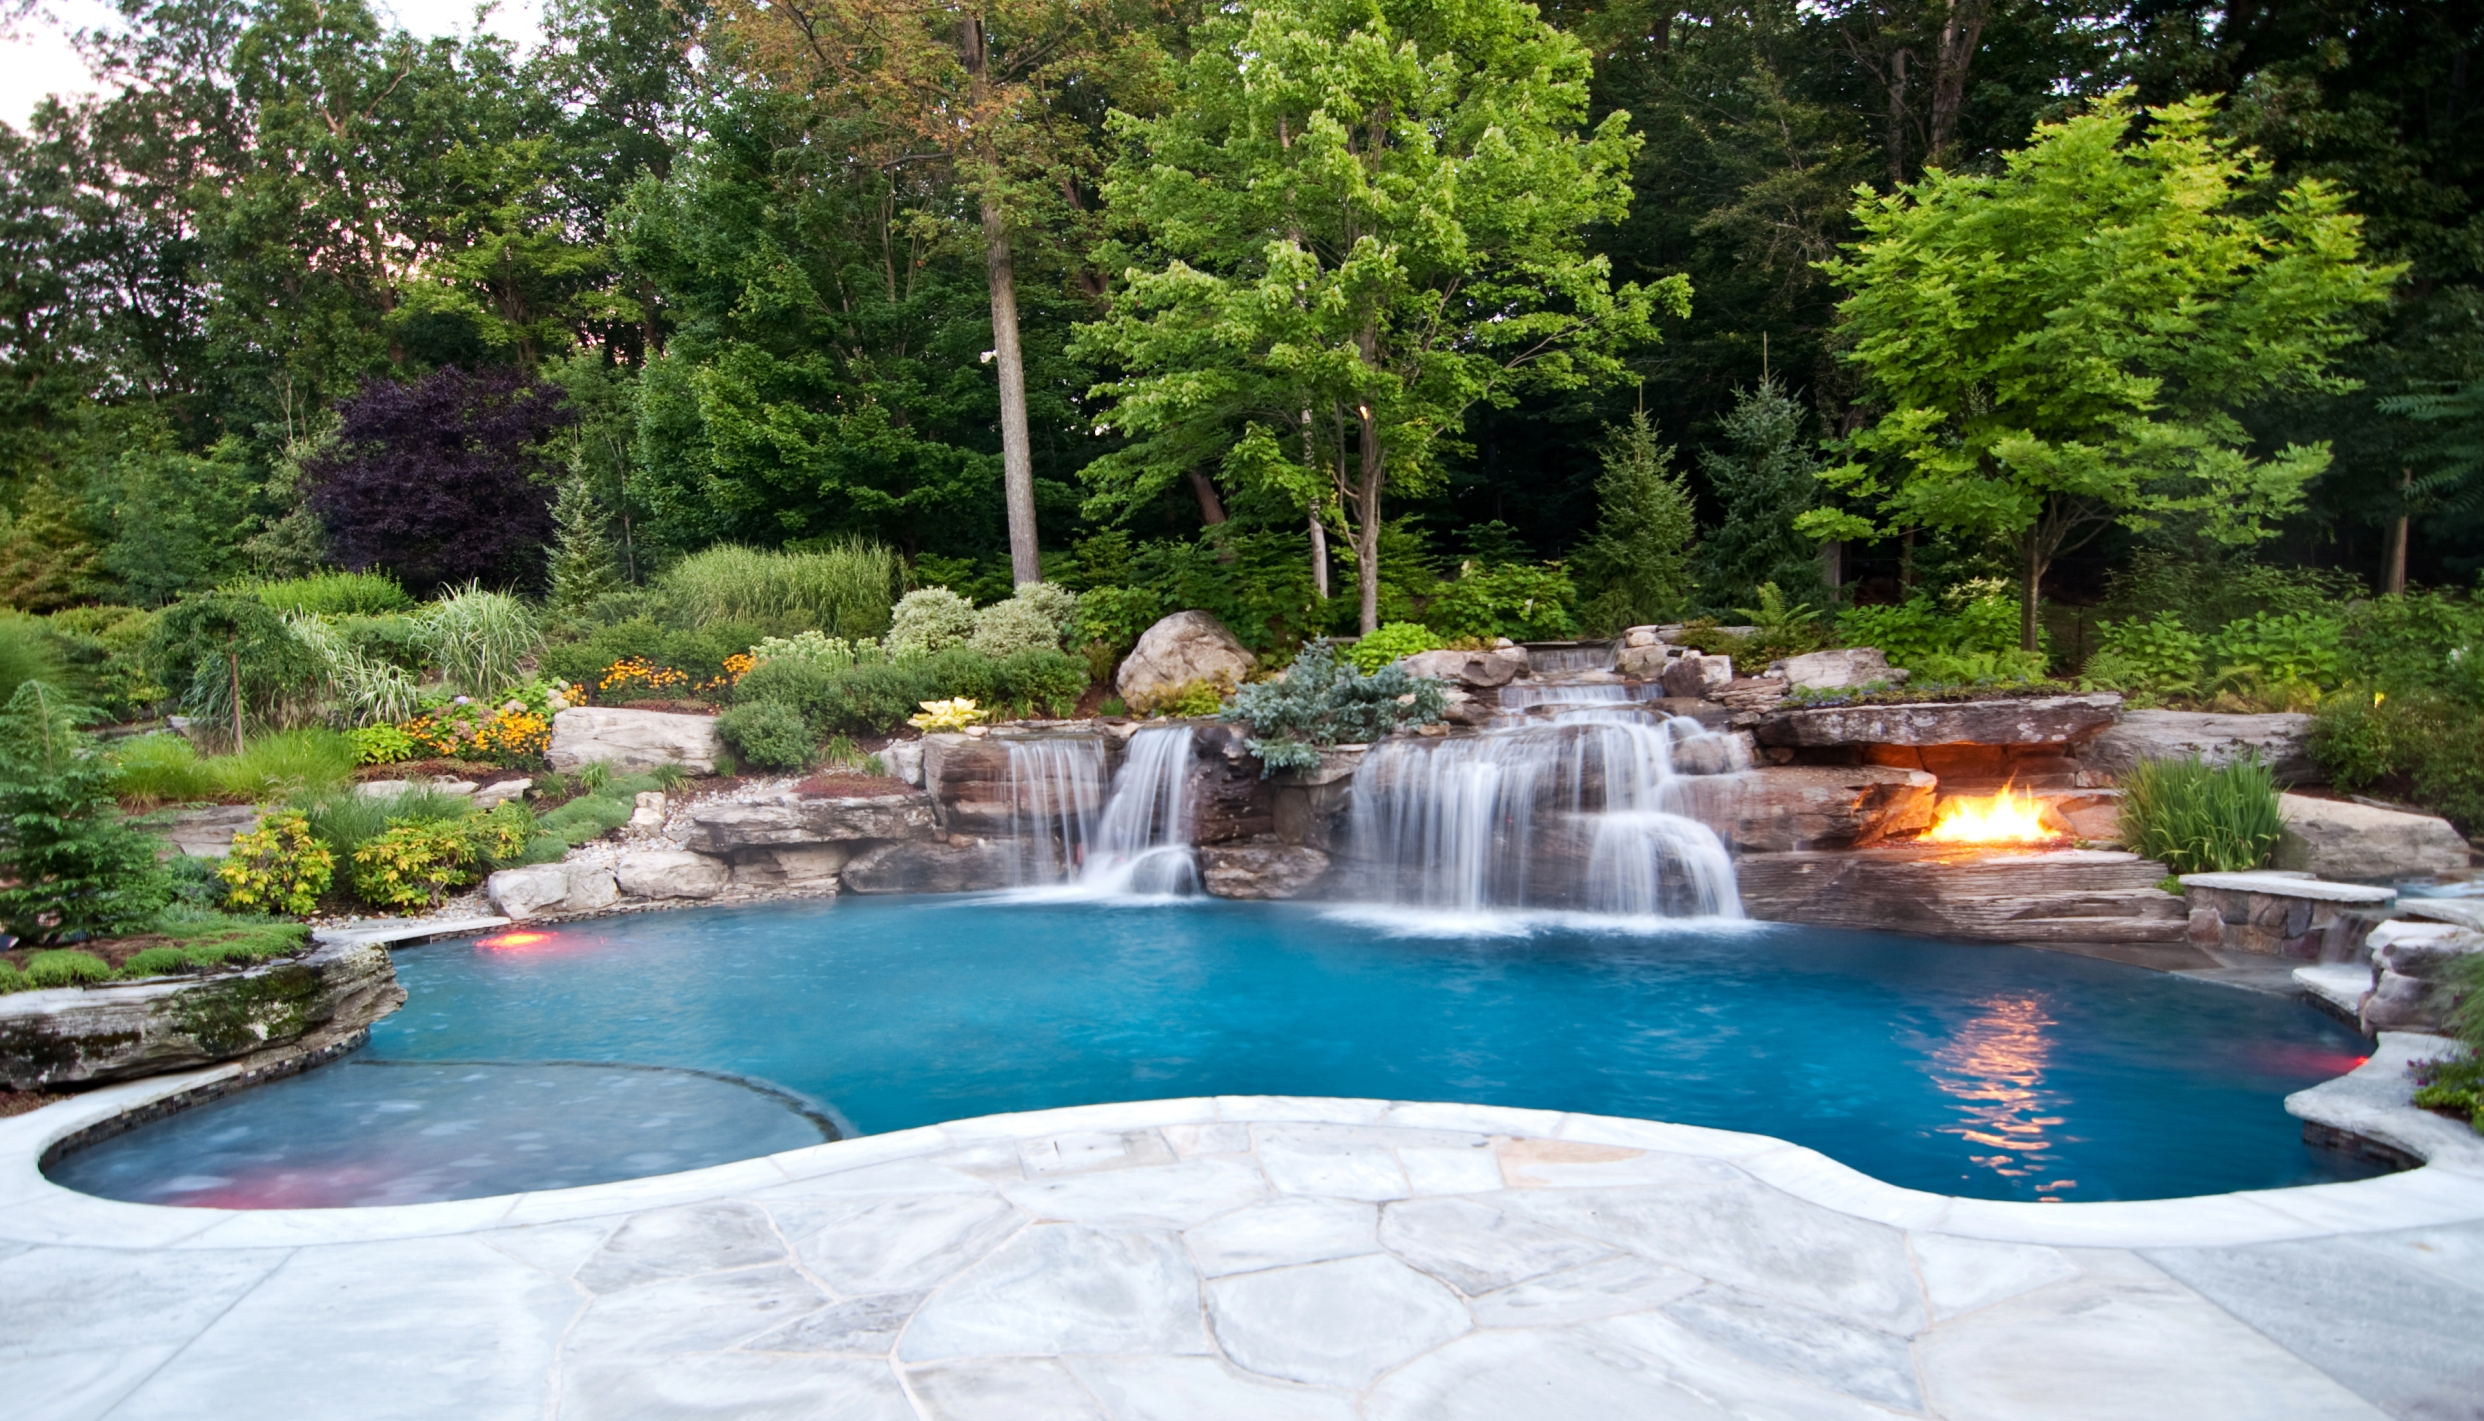 New jersey pool renovation company earns international for Pool design new jersey